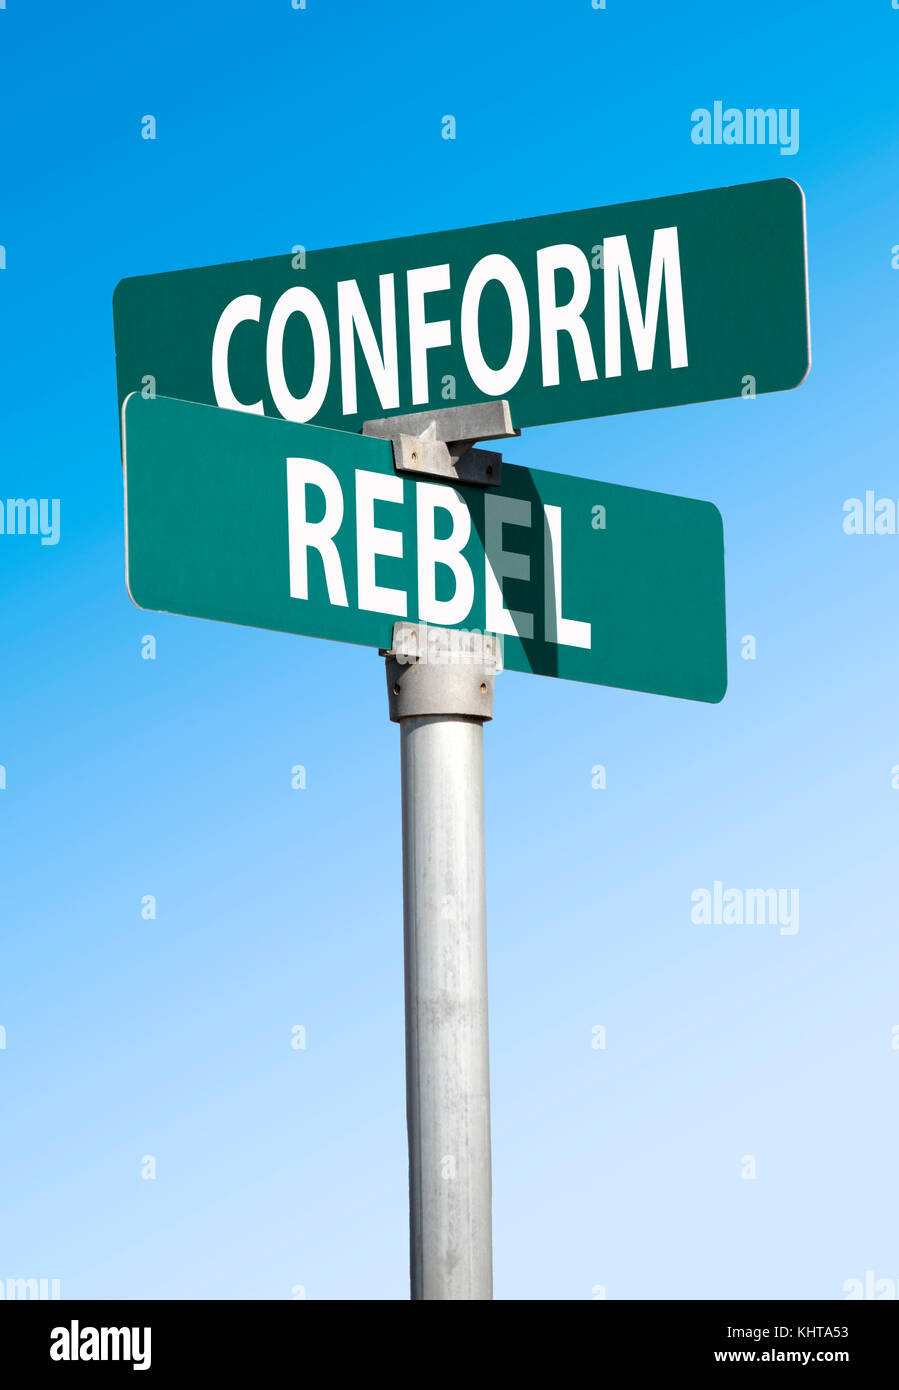 conform and rebel - Stock Image